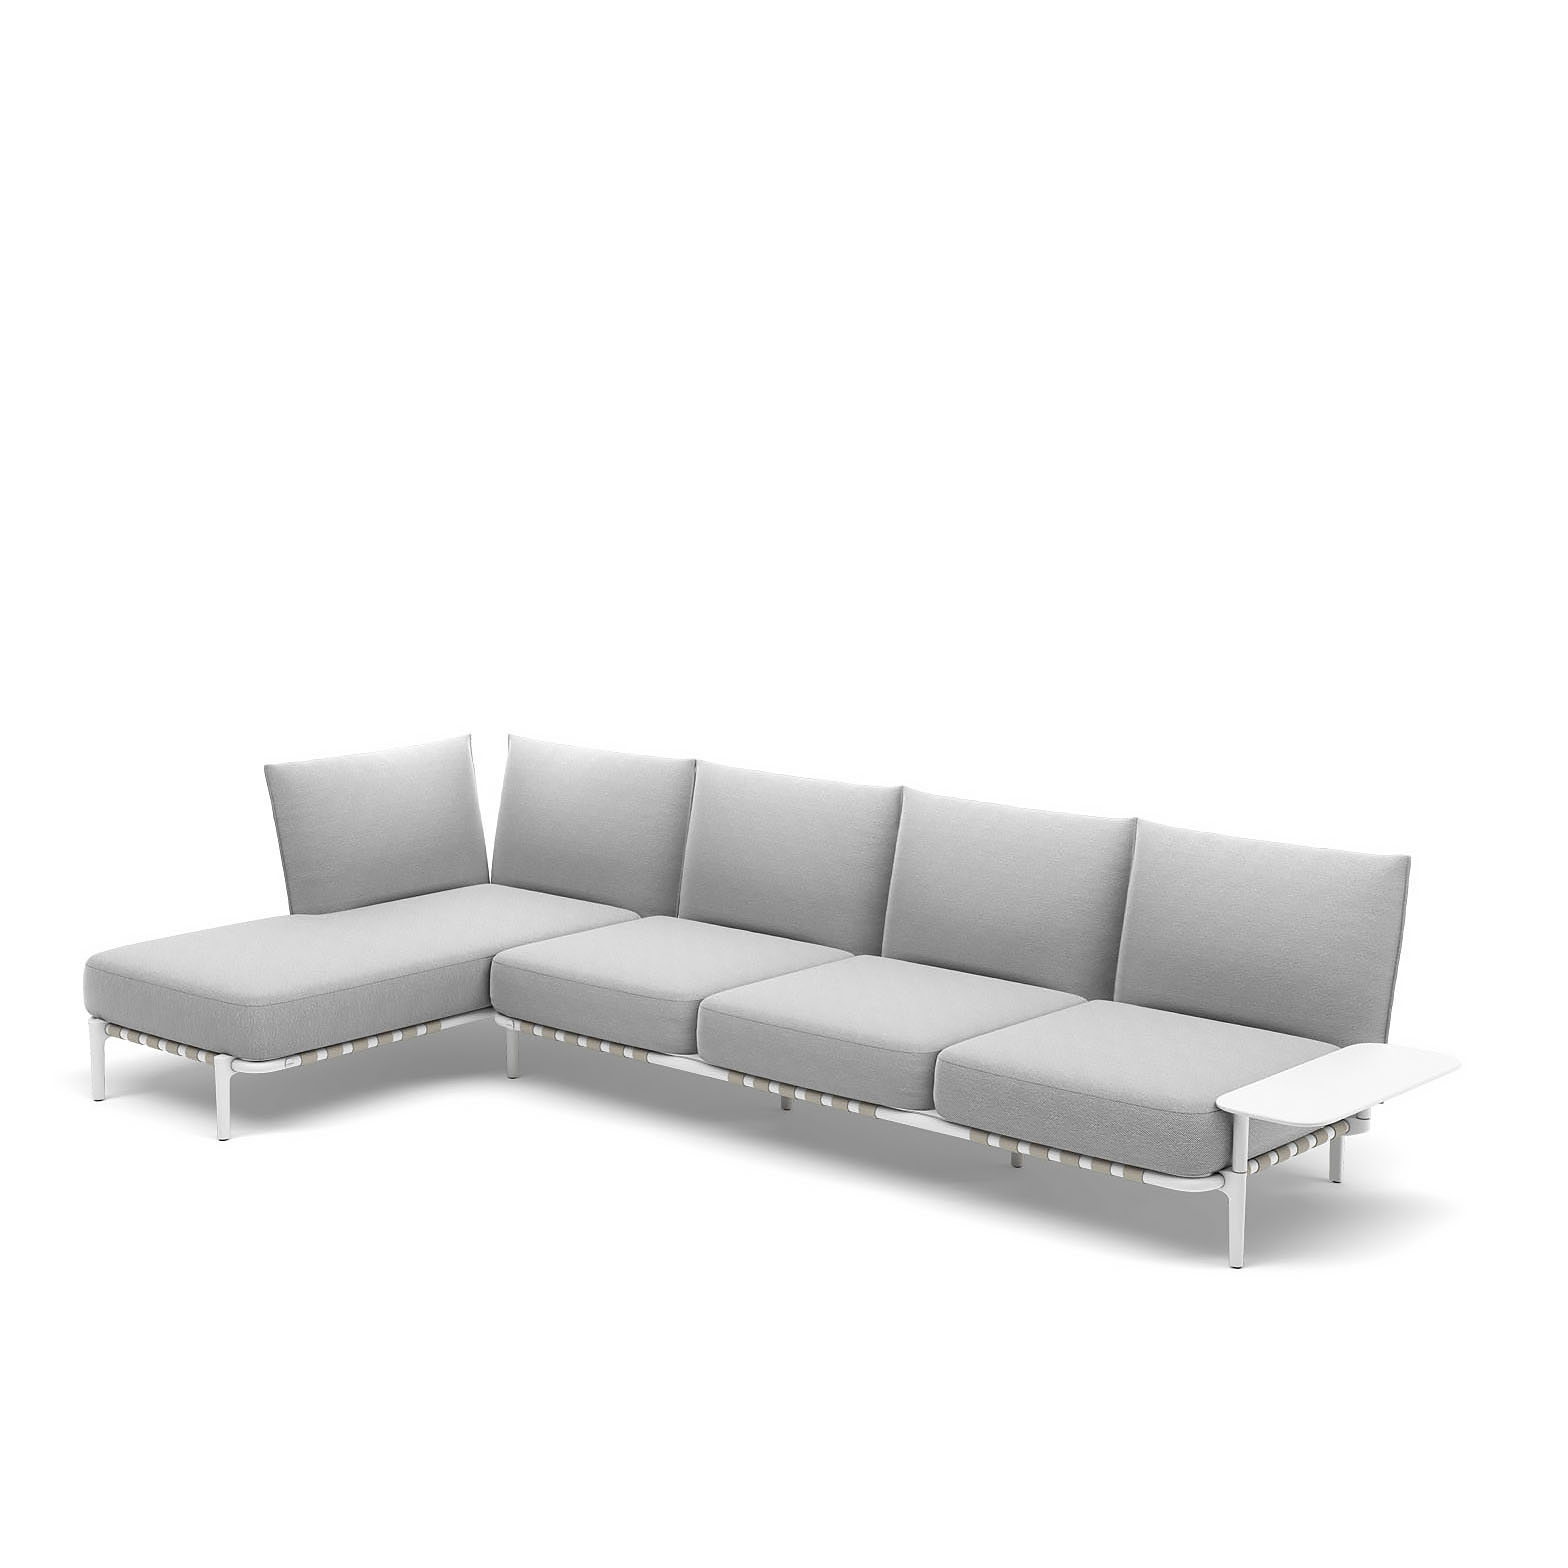 DEDON-BREA-4-Seater-Daybed-right.jpg